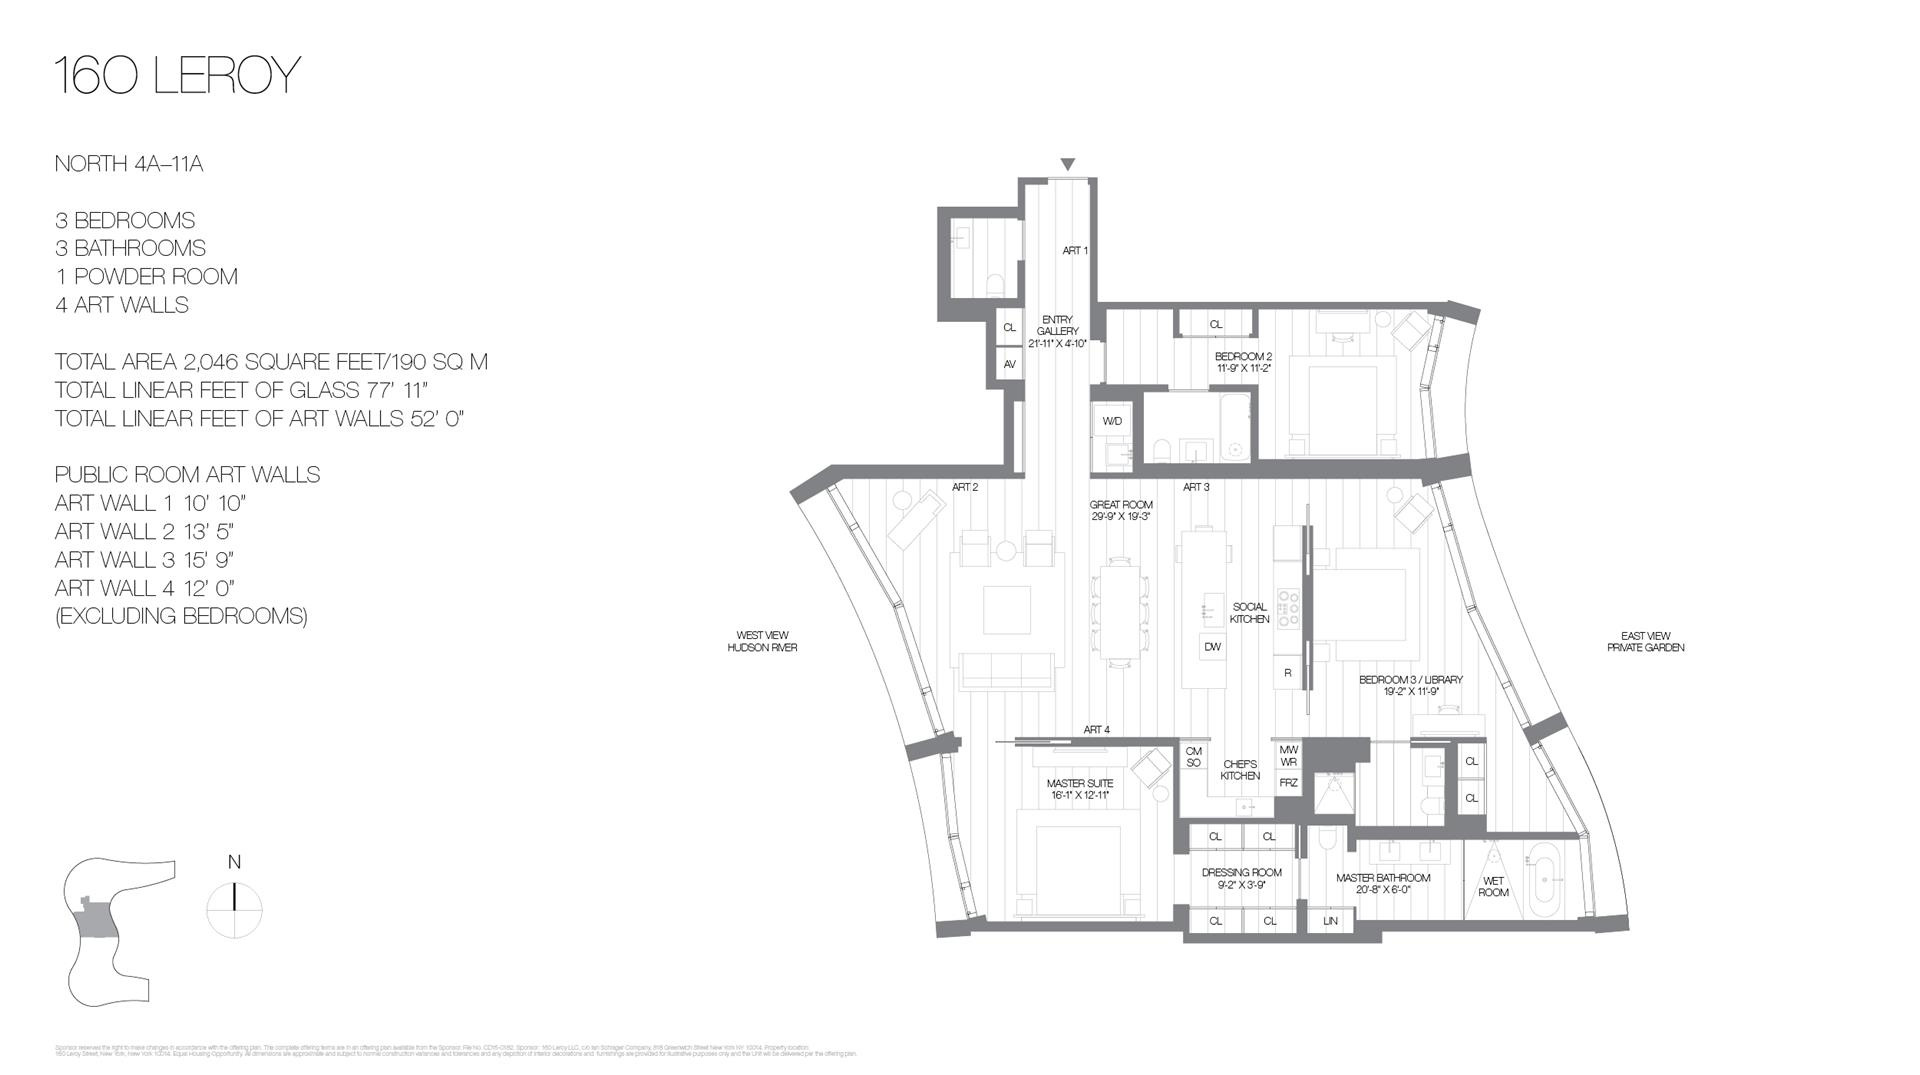 Floor plan of 160 Leroy St, NORTH6A - West Village - Meatpacking District, New York